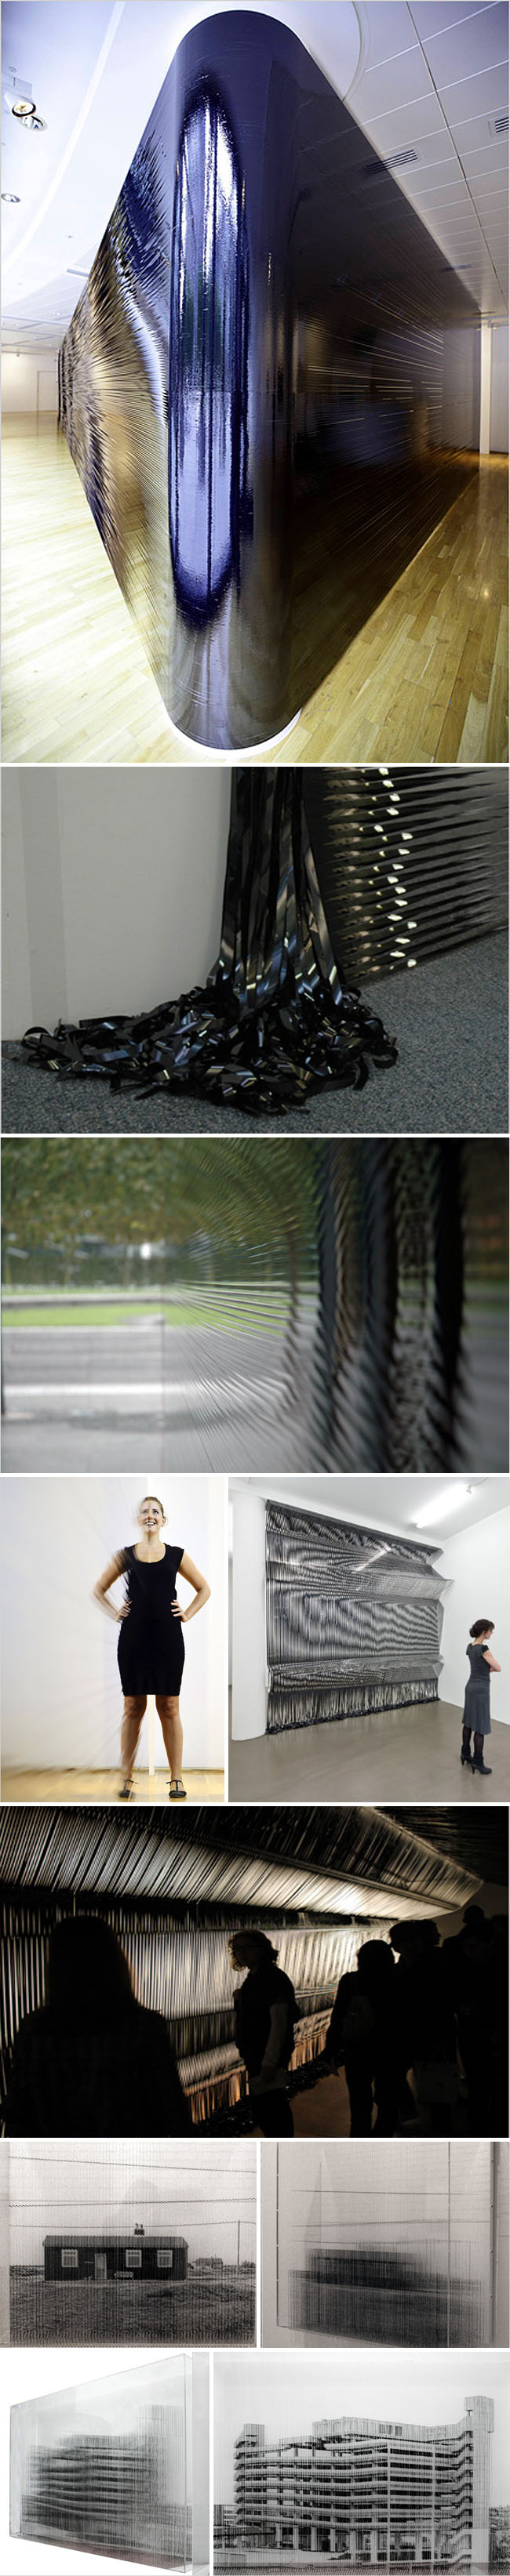 videotape installations, Robert currie, English Artist